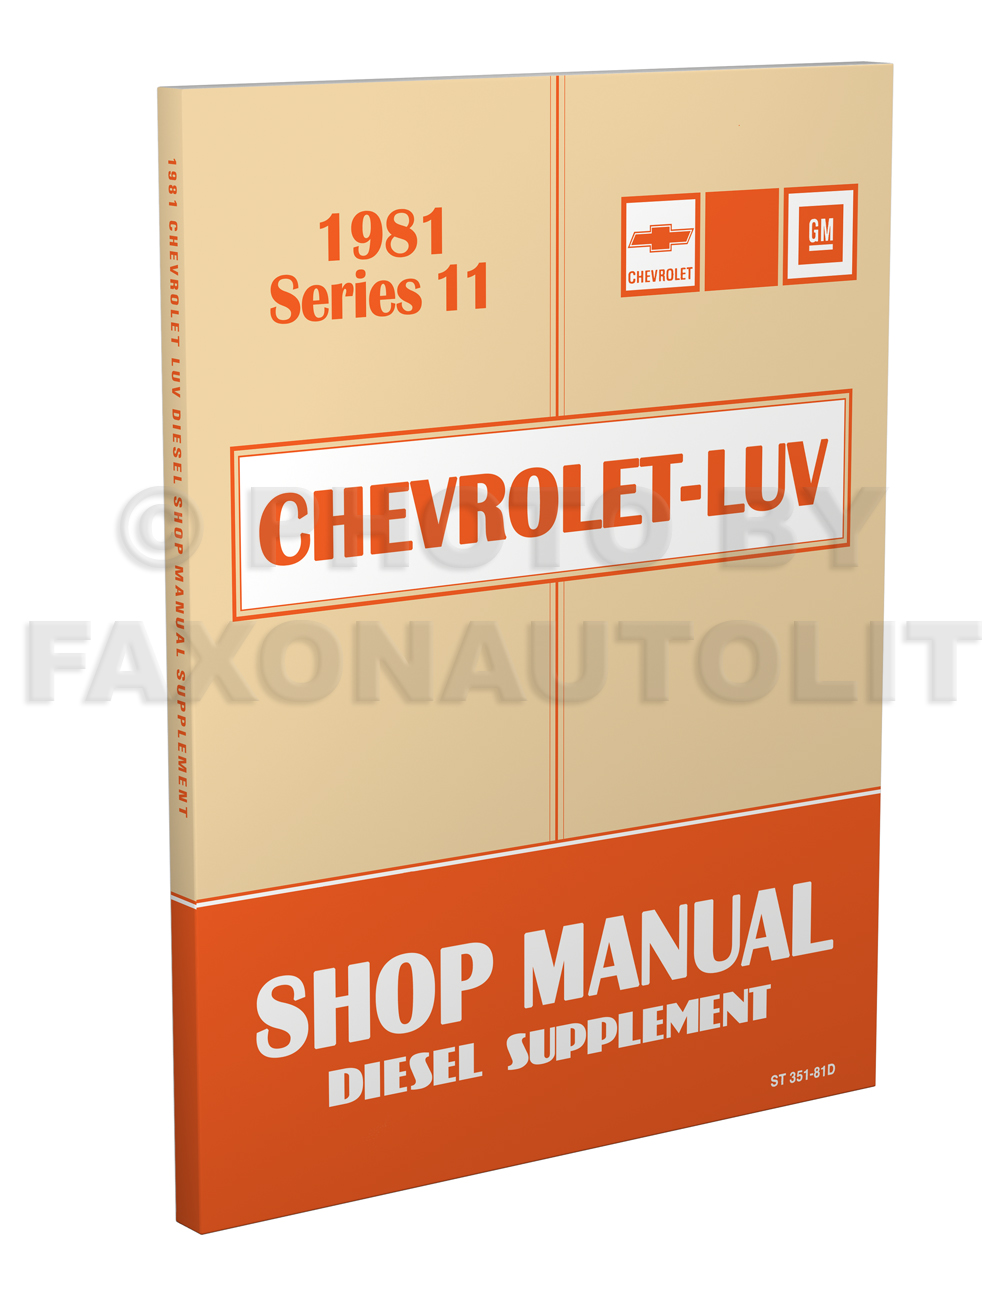 1981 Chevy Luv Diesel Engine Repair Manual Original